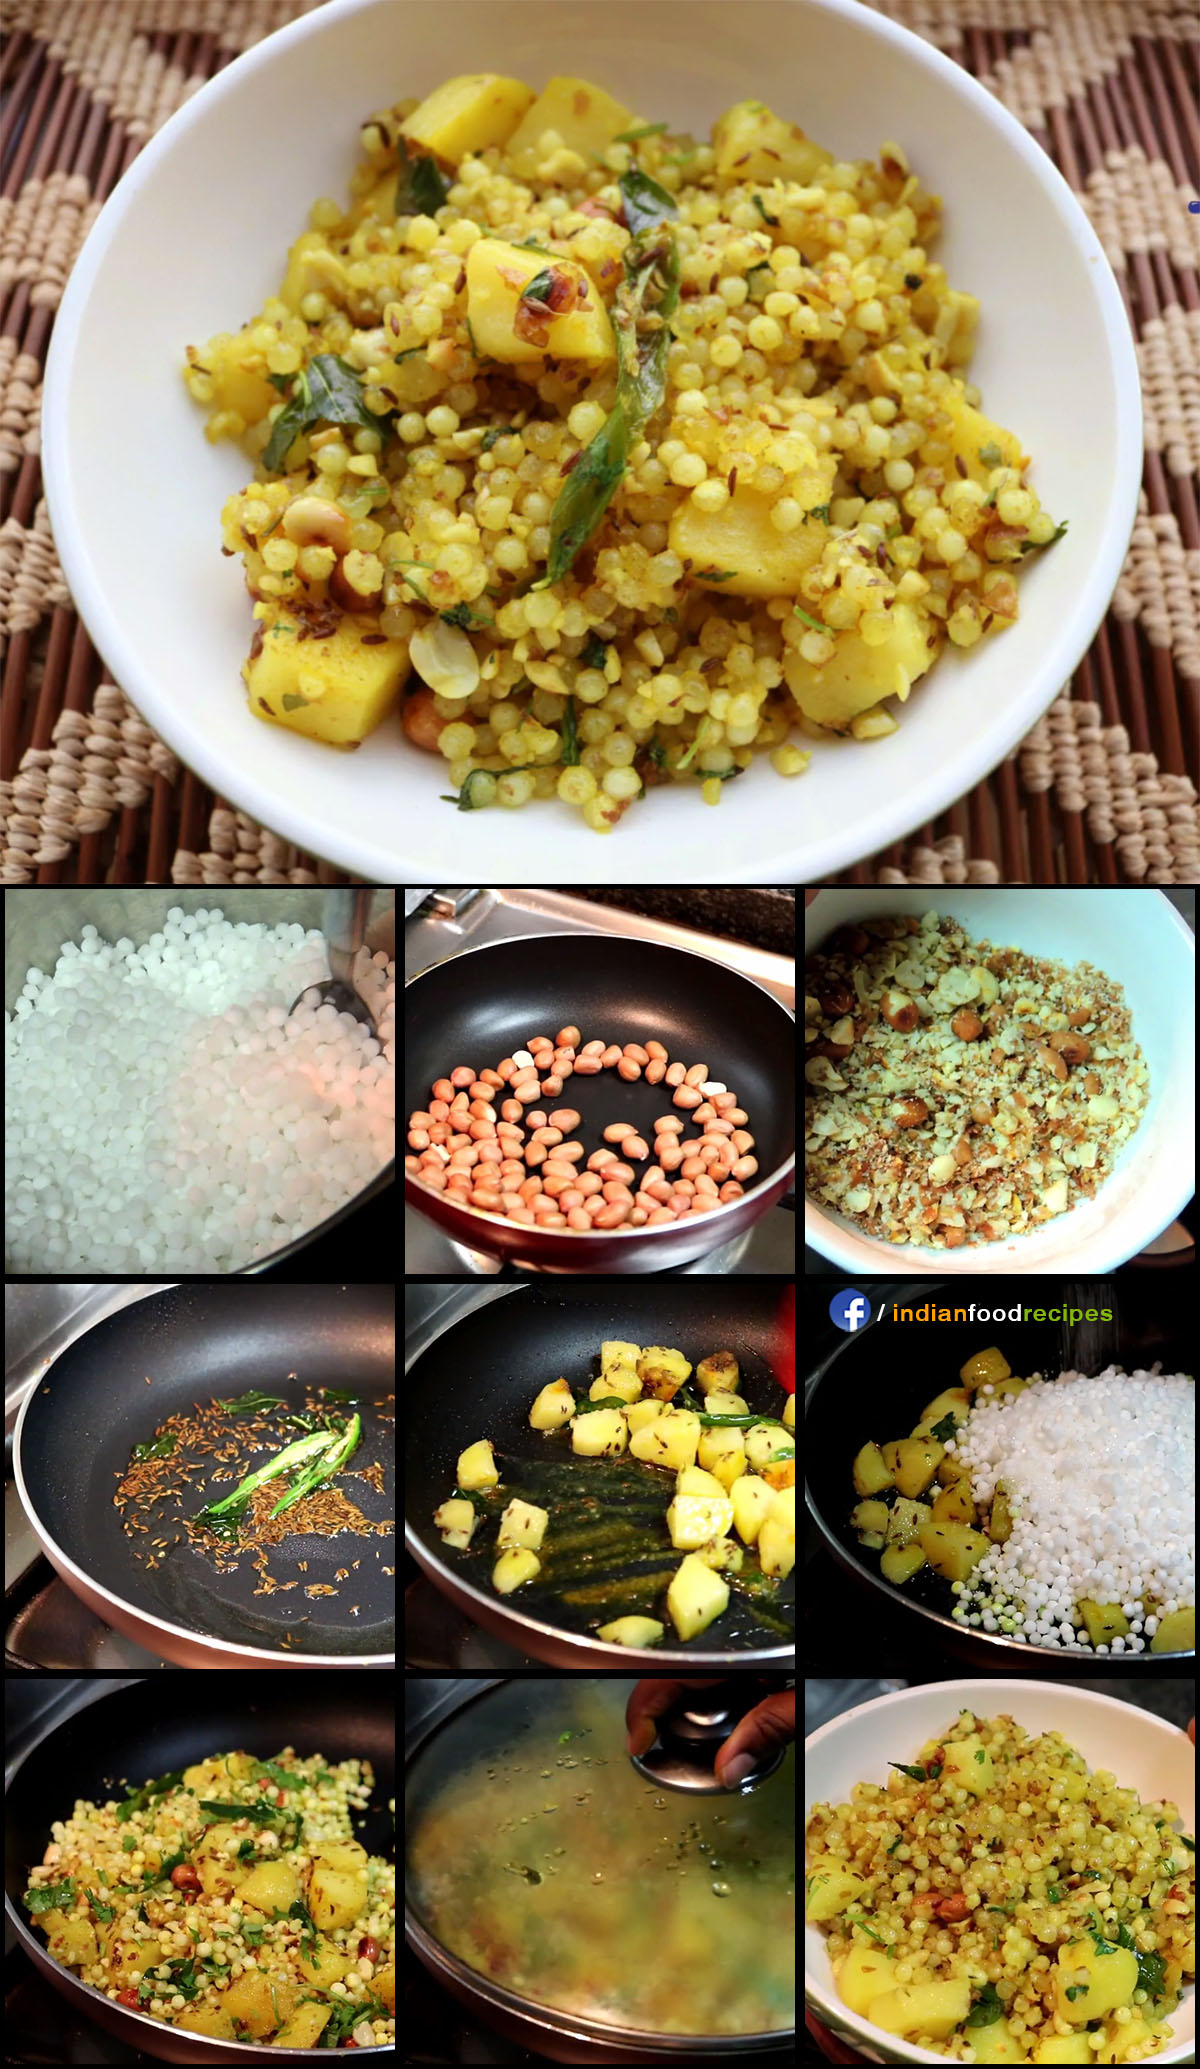 Sabudana Khichdi recipe step by step pictures